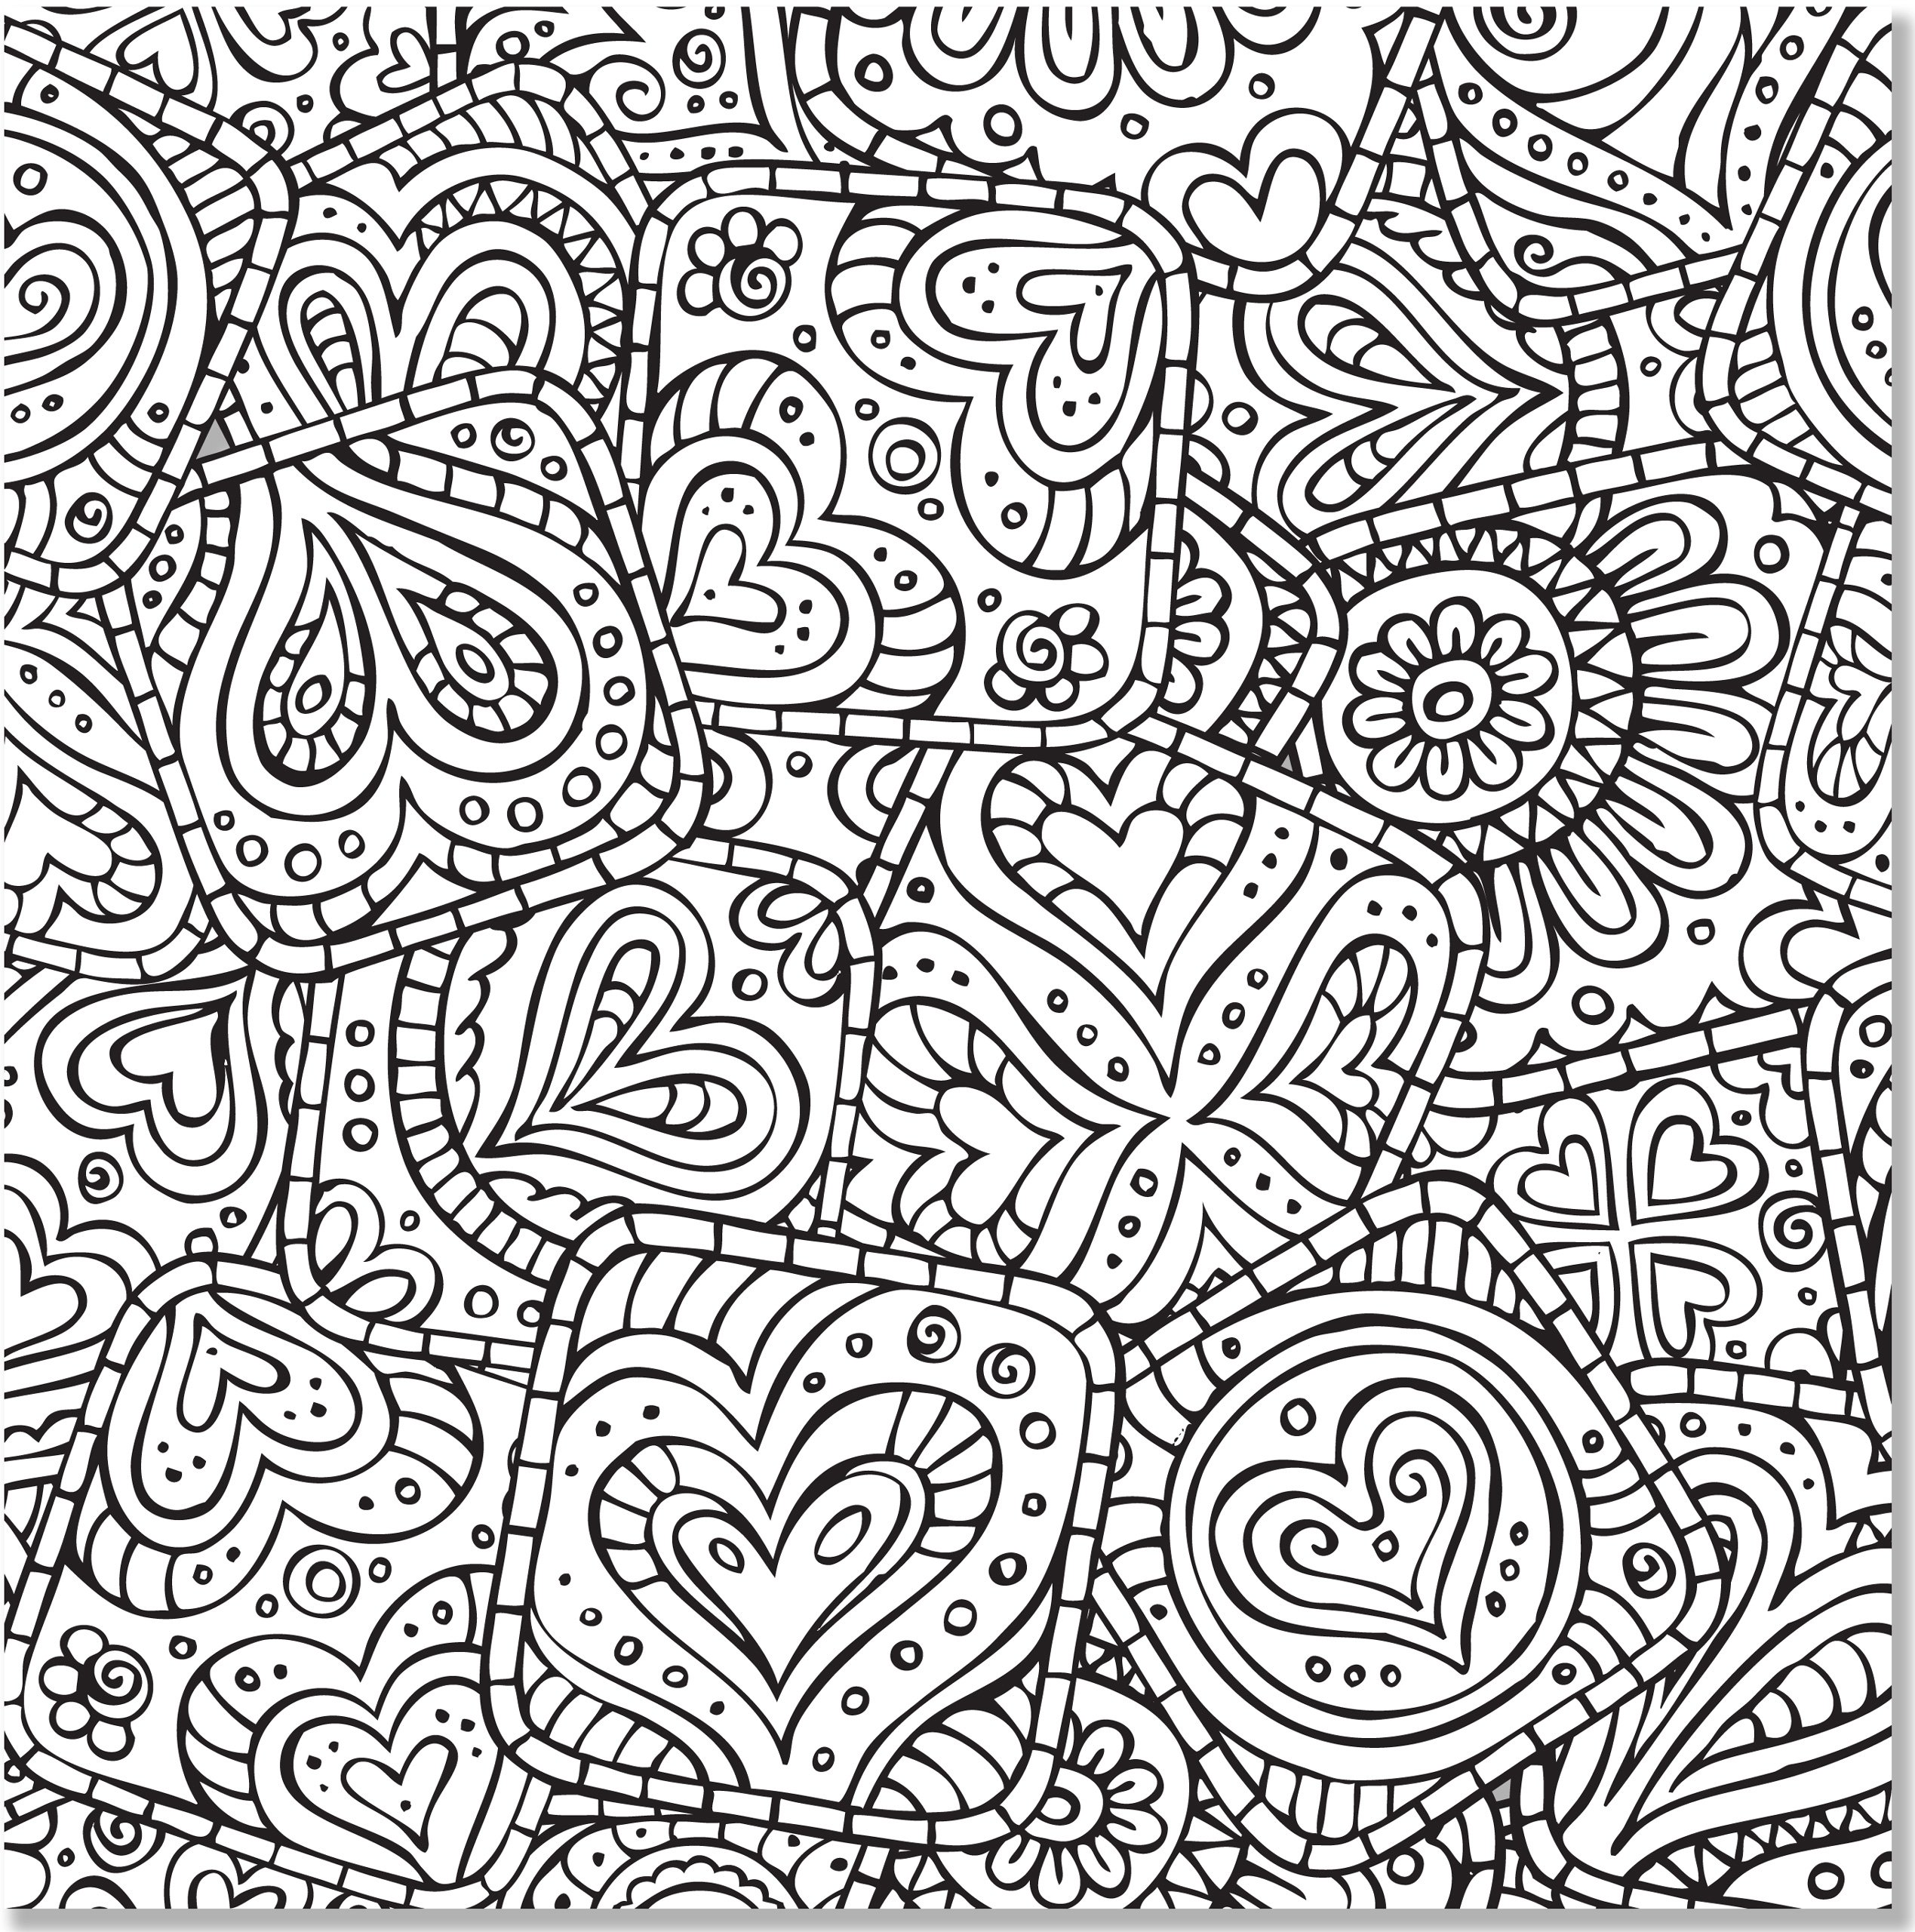 Coloring book color of art - Amazon Com Doodle Designs Adult Coloring Book 31 Stress Relieving Designs Studio 9781441317469 Peter Pauper Press Books